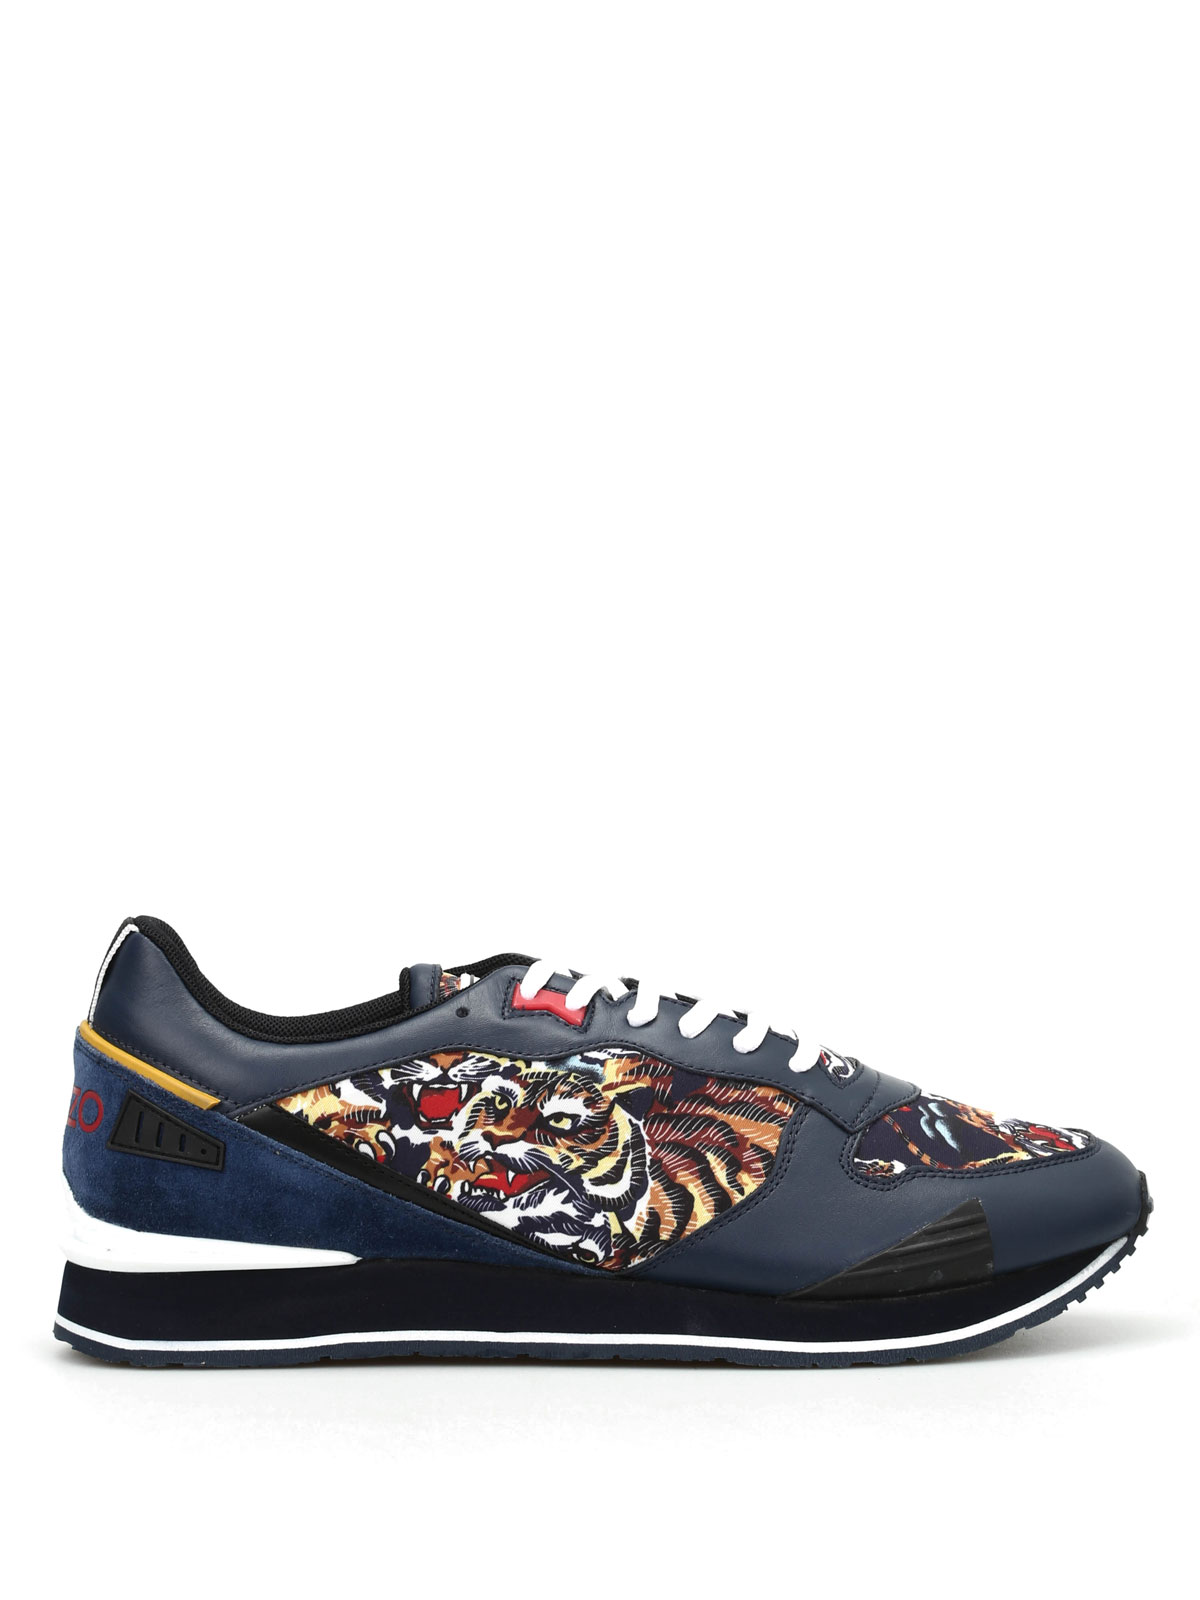 92b78f13 Kenzo - Flying Tiger sneakers - trainers - M42465 | Shop online at iKRIX